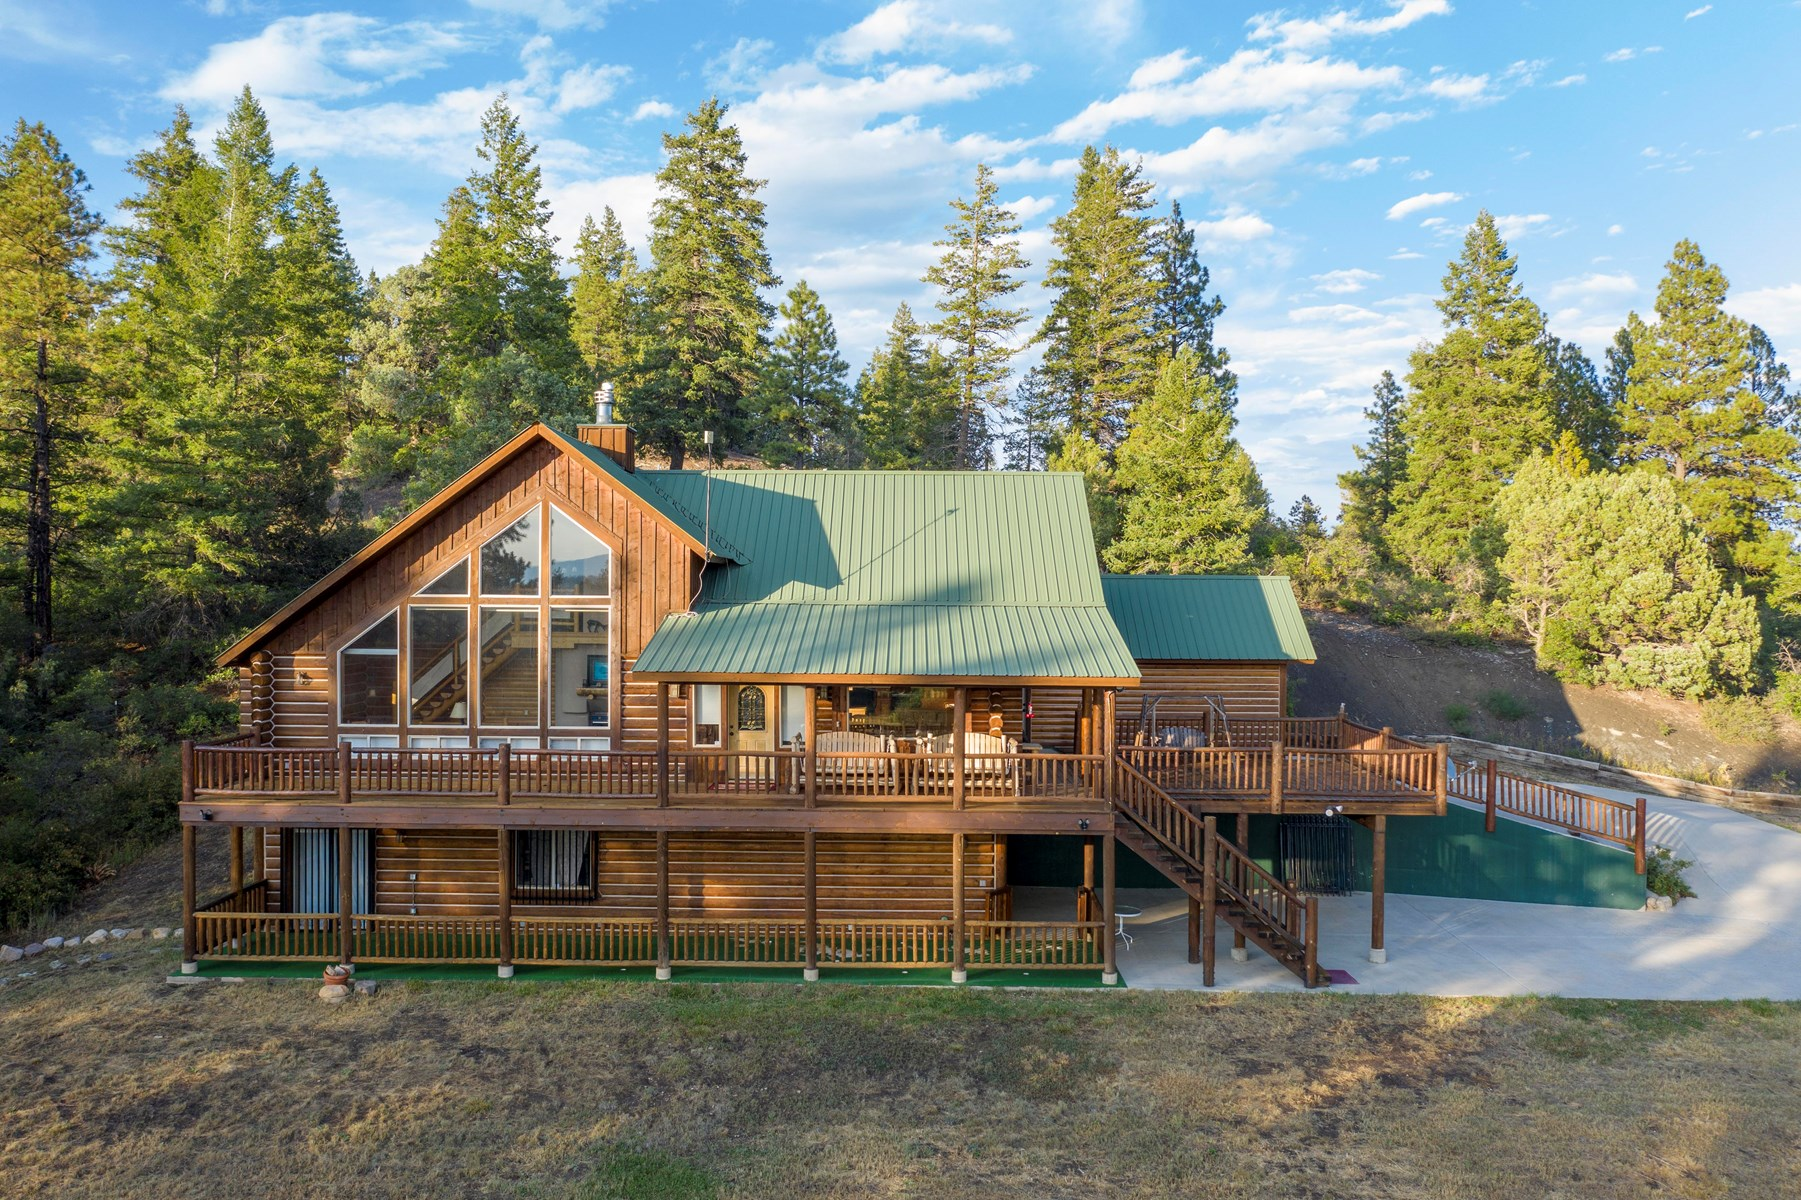 Log House bordered by forest service in Pagosa Springs, CO